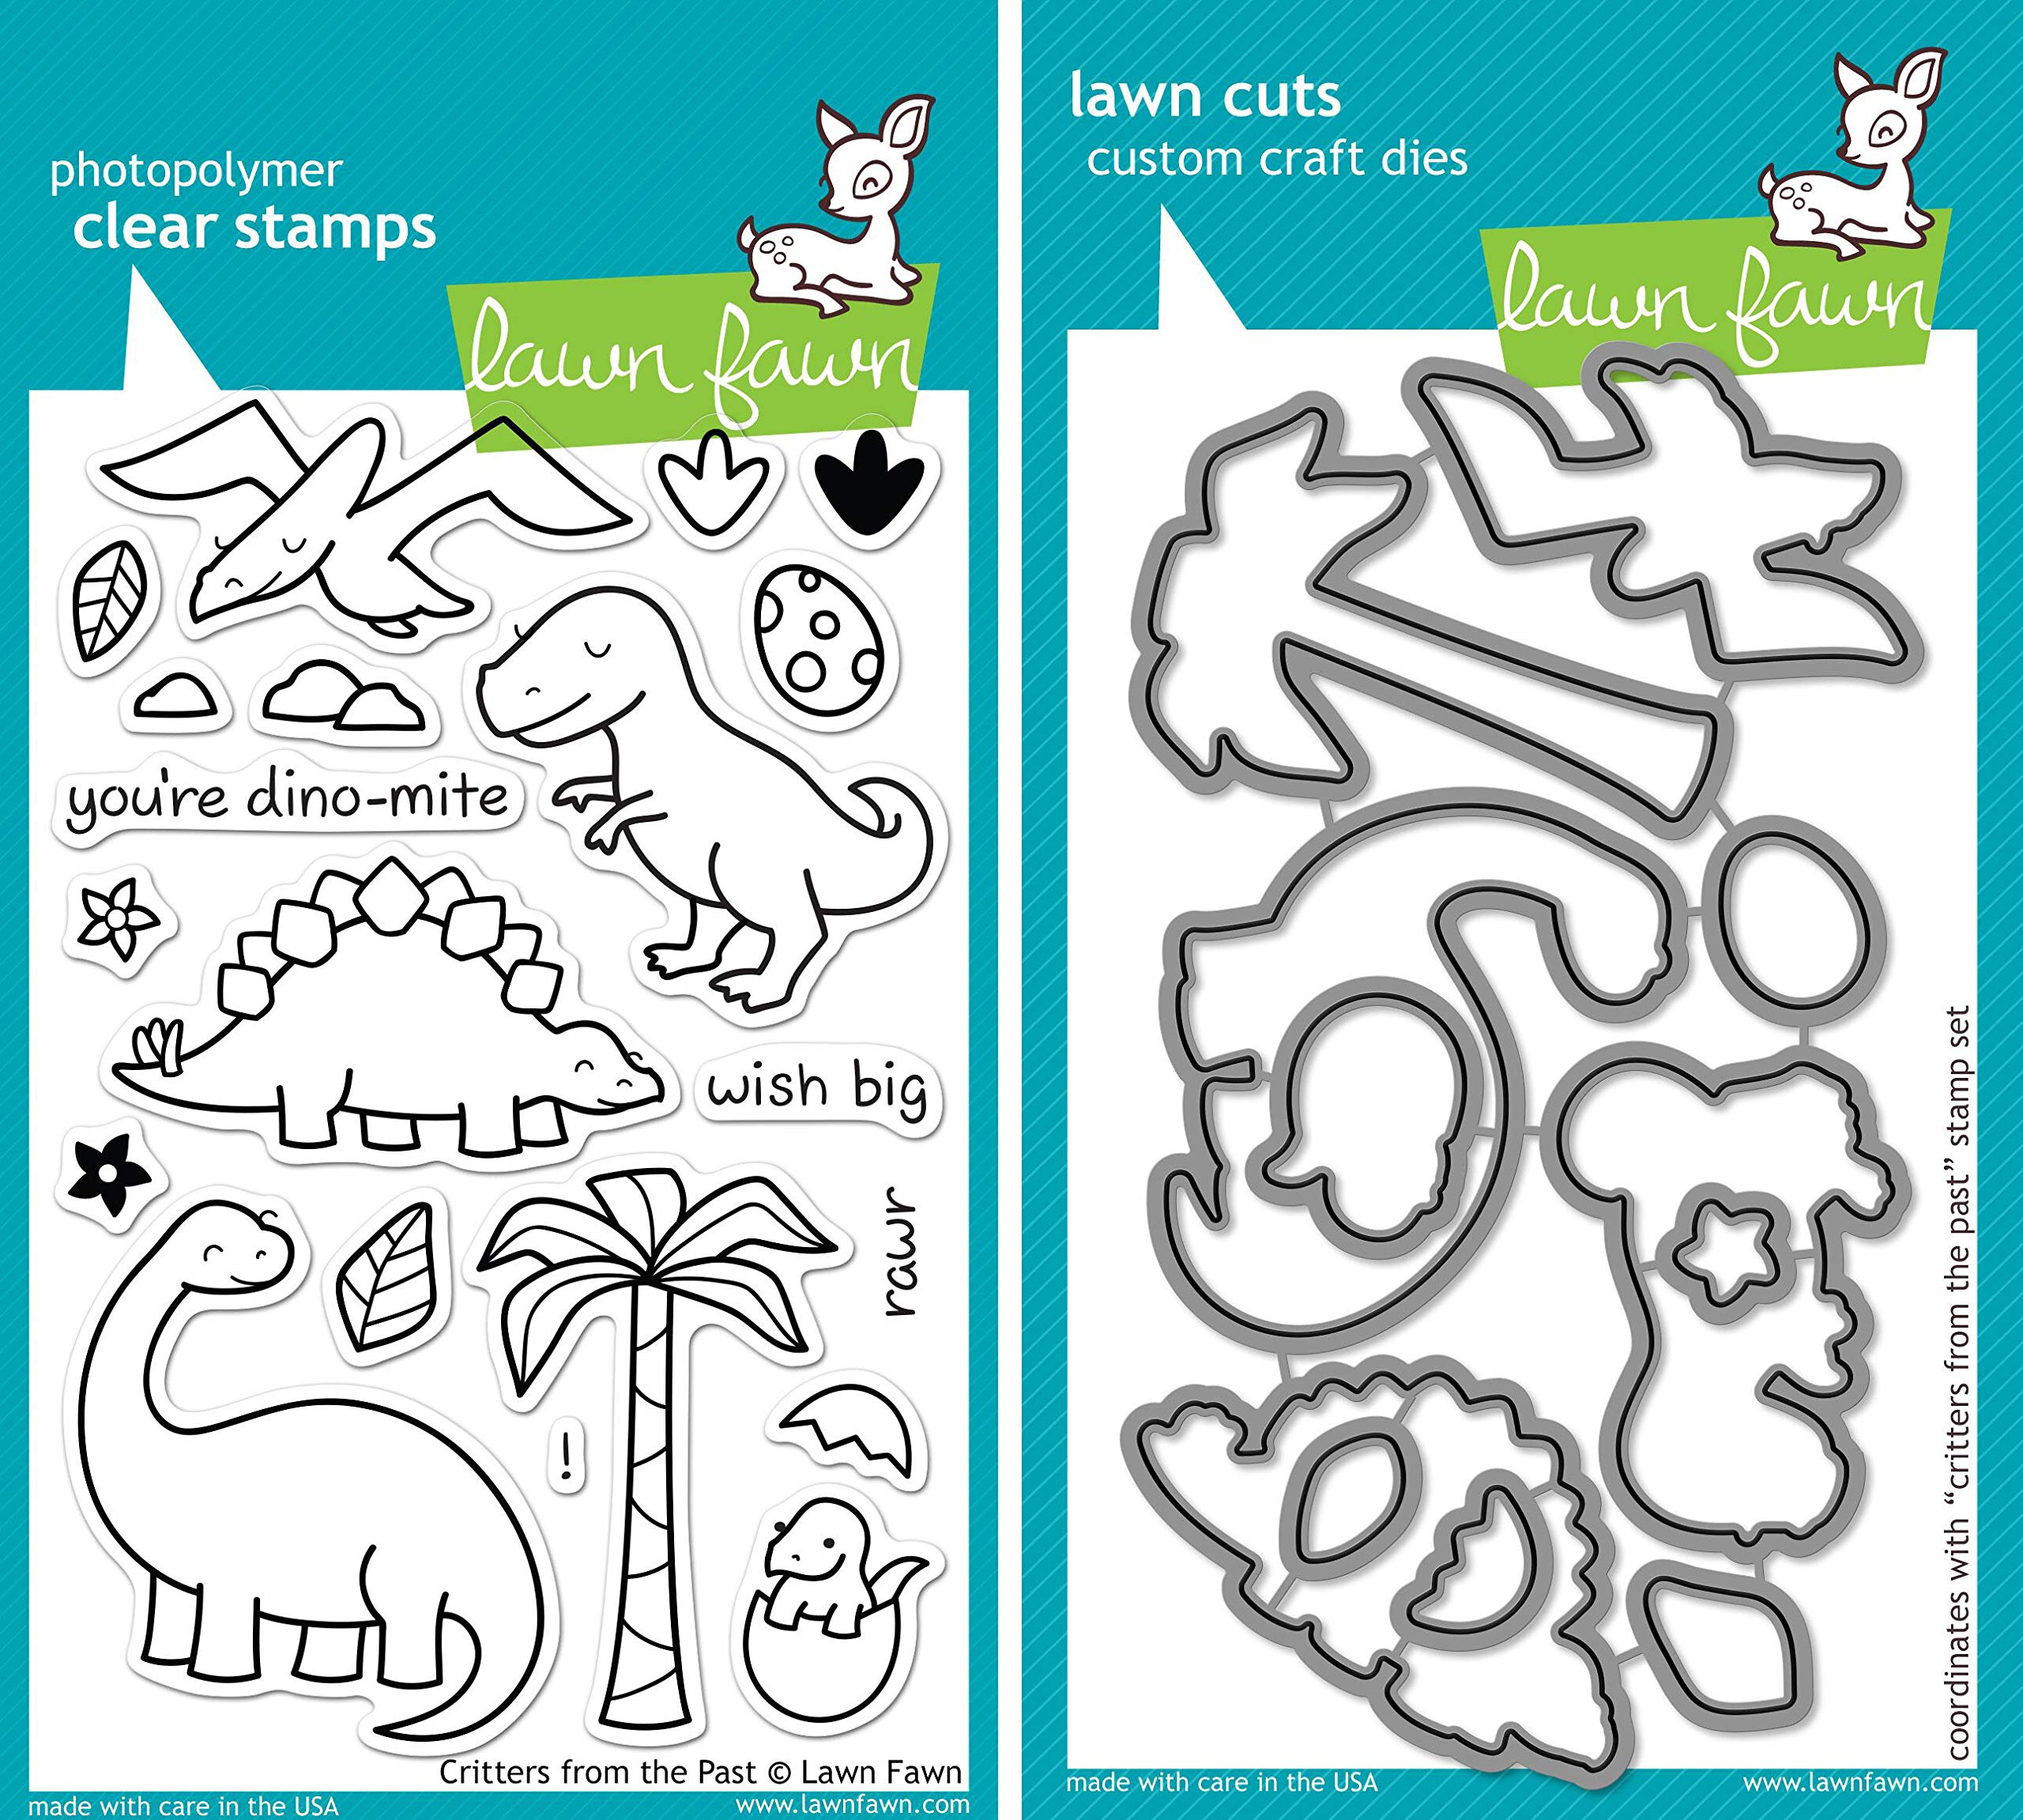 Lawn Fawn Critters From The Past Clear Stamp and Die Set - Includes One Each of LF602 (Stamp) & LF653 (Die) - Custom Set